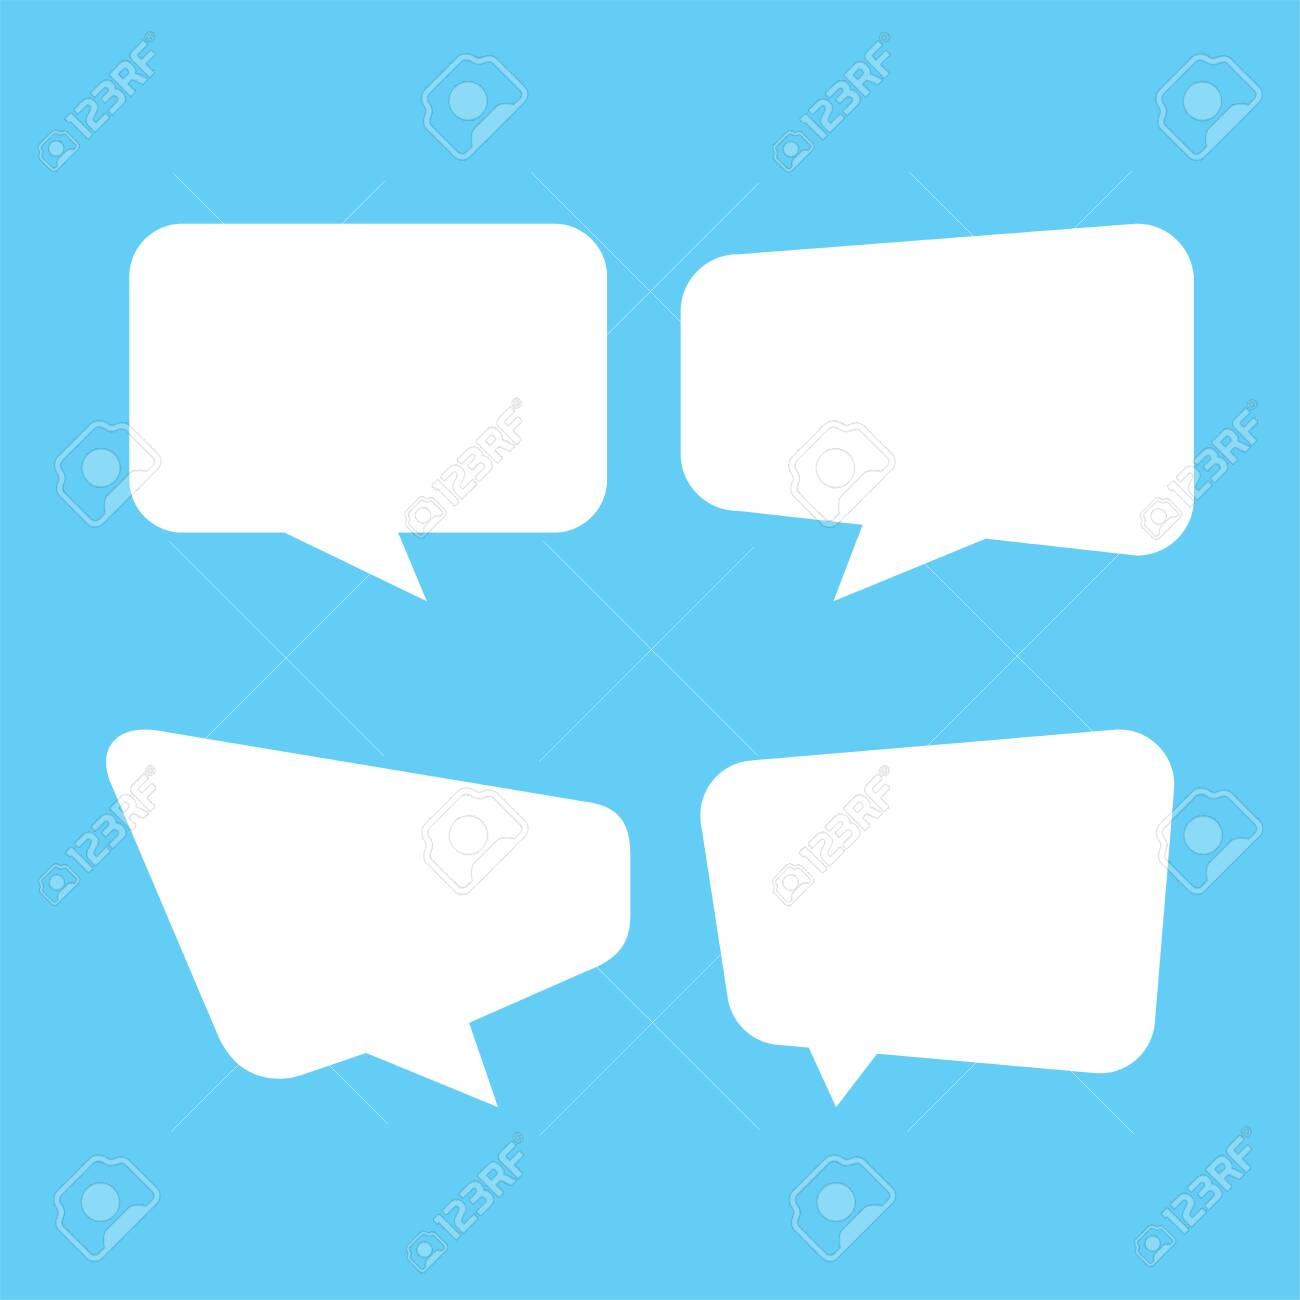 white speech bubble isolated on blue, speech balloon square sign for communication symbol, doodle white speech bubble for talk text, balloon message icon, dialog chatting graphic for icon talk - 149332746